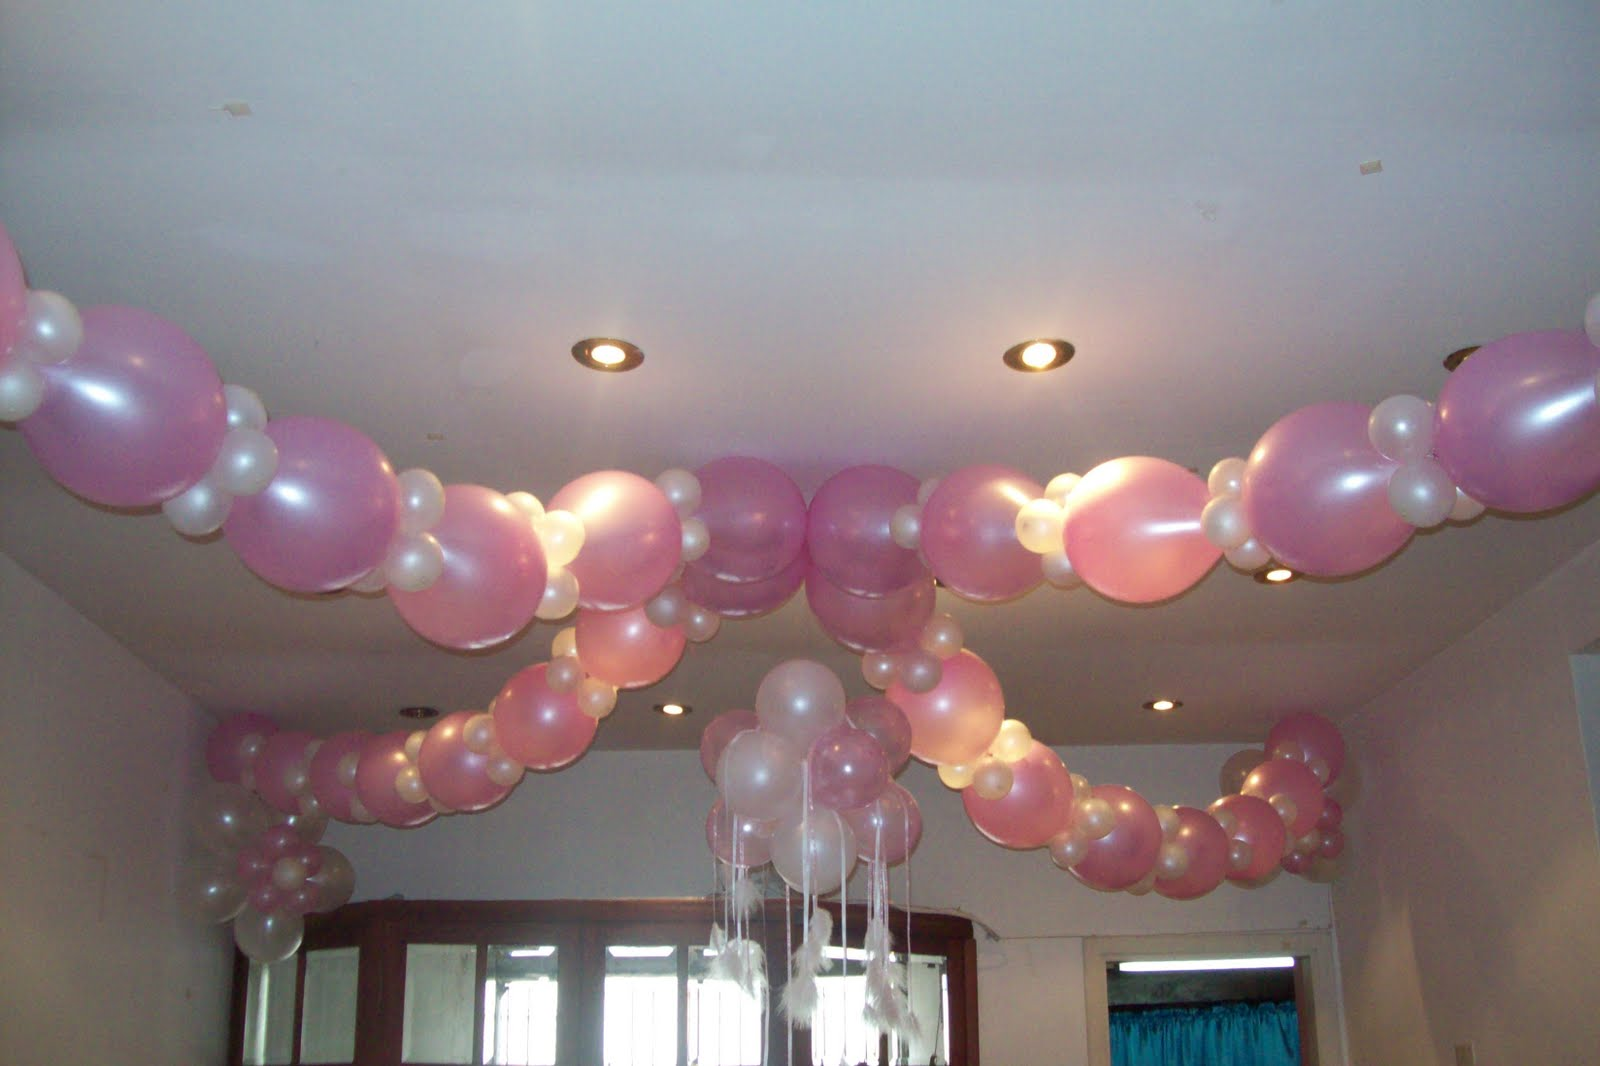 Decoracion con globos decoracion con globos para 15 a os for Decoracion con globos 50 anos